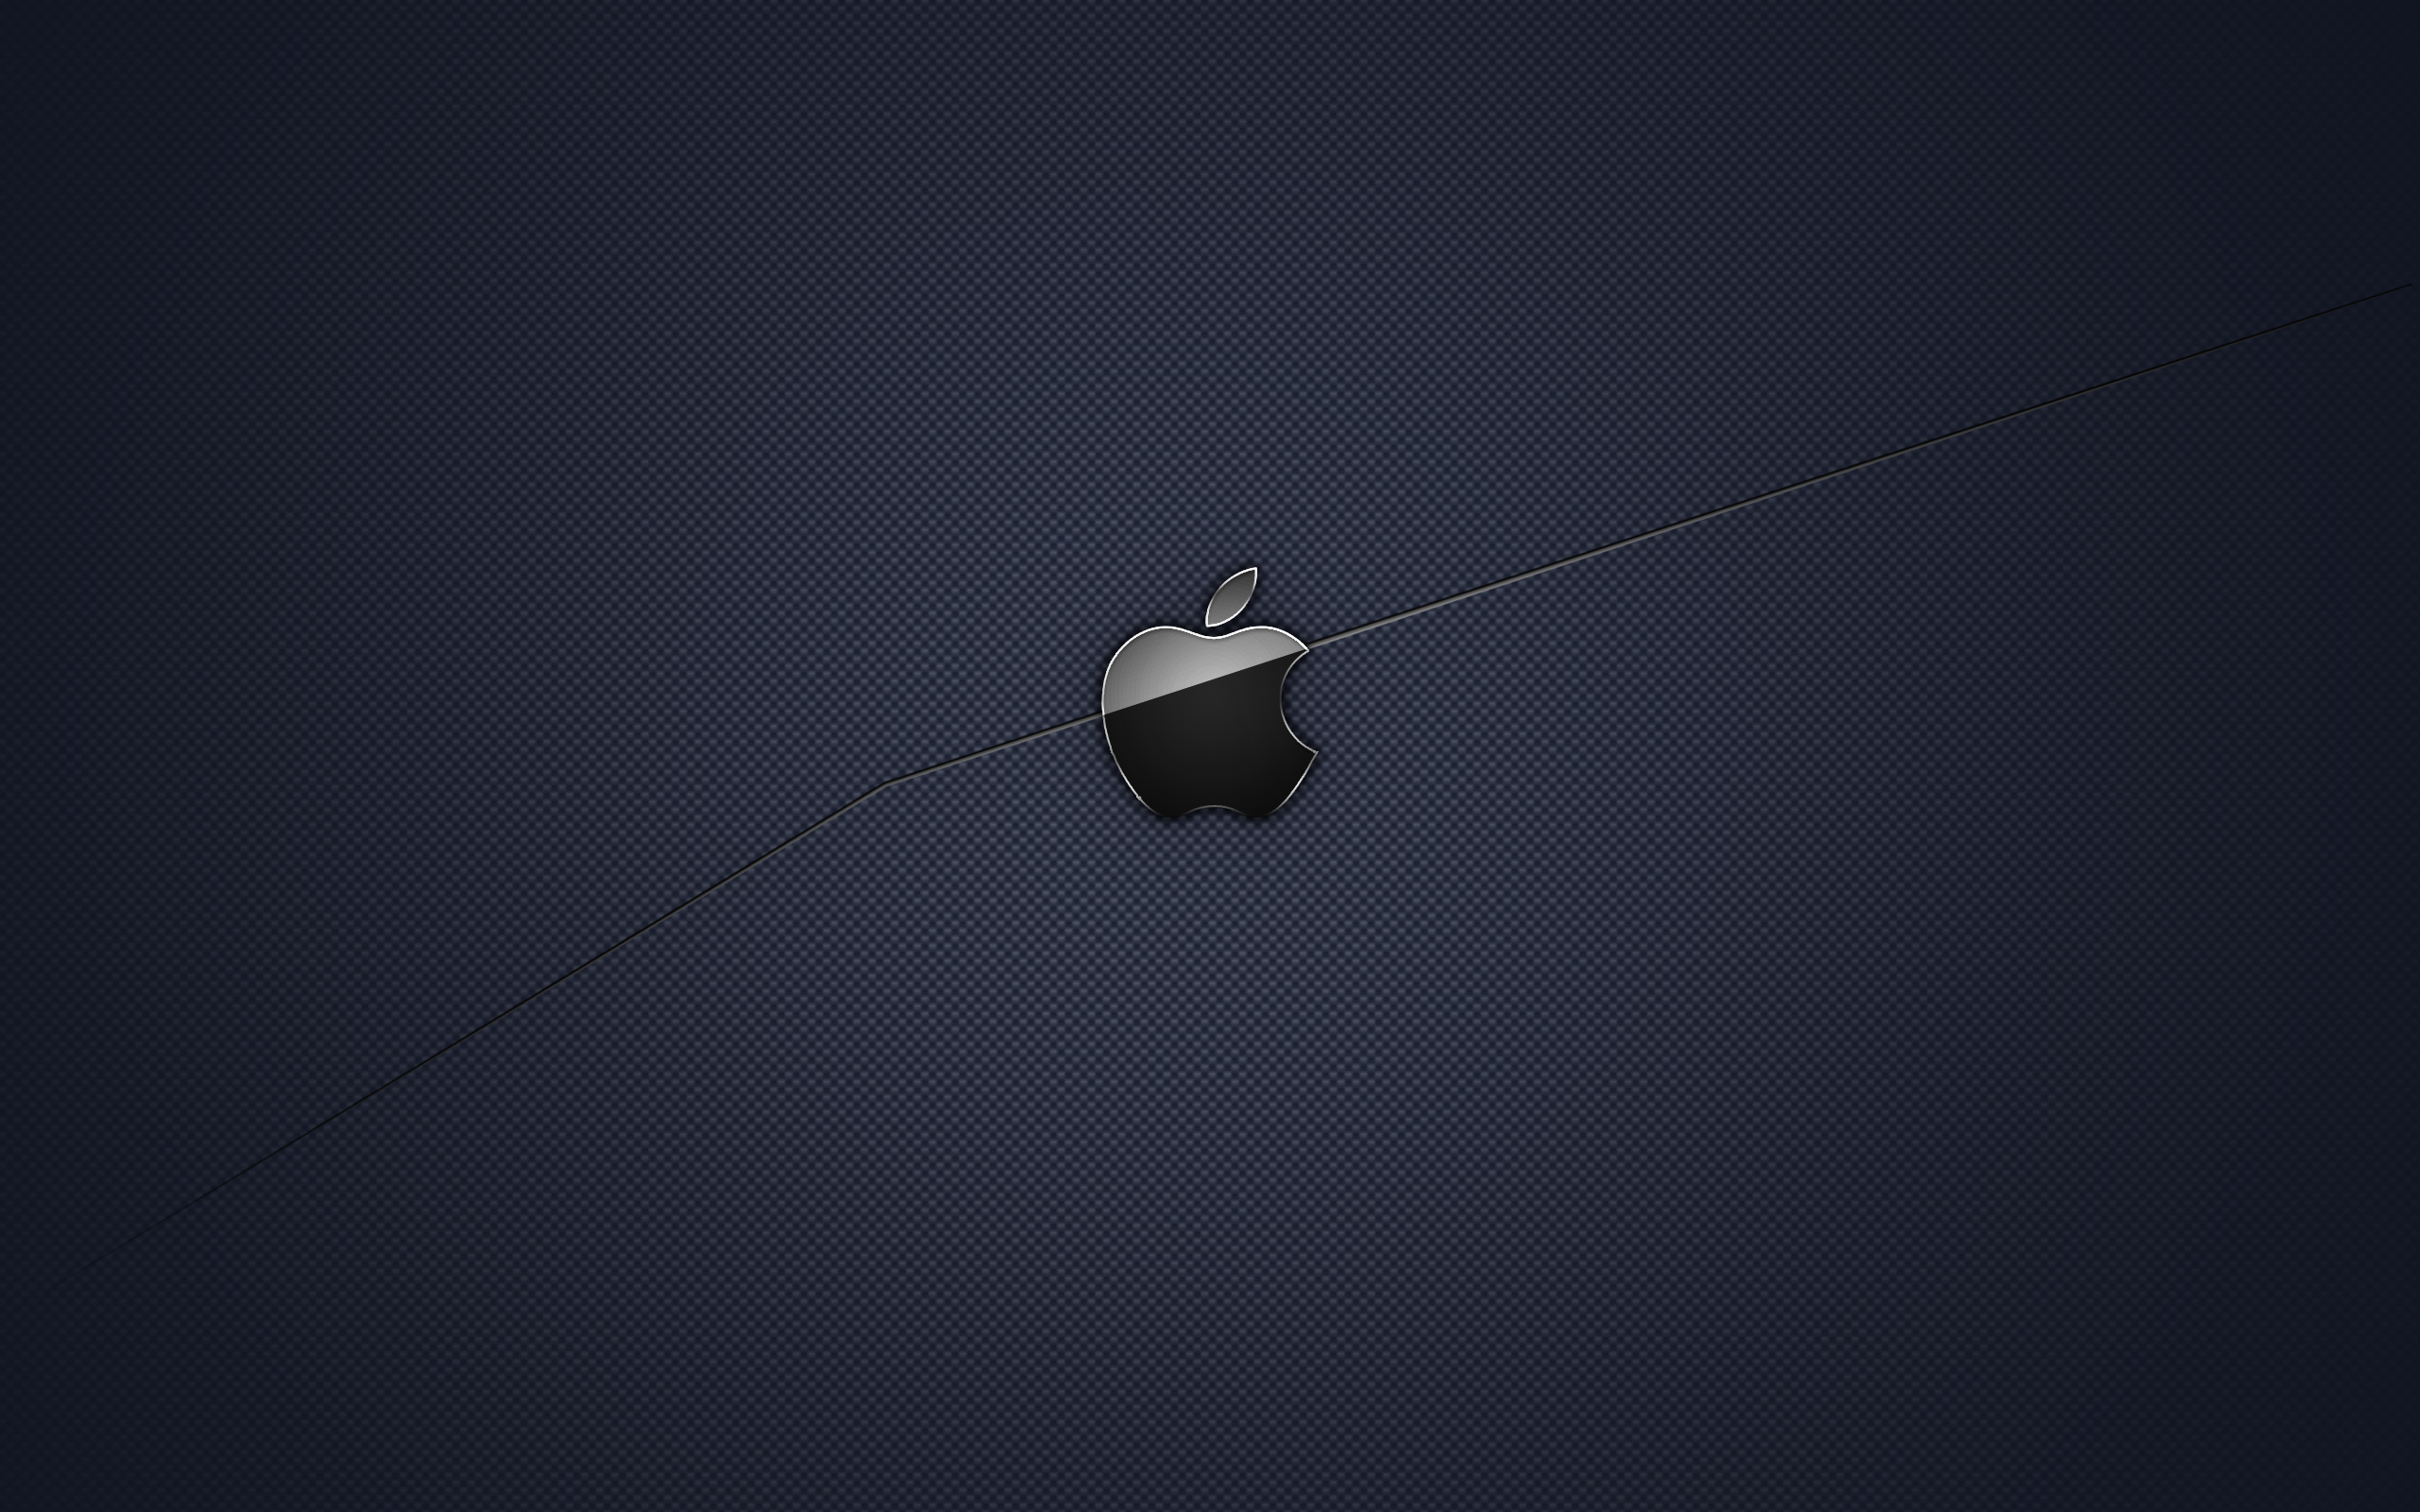 Apple Mac Wallpapers Hd: Best Wallpapers